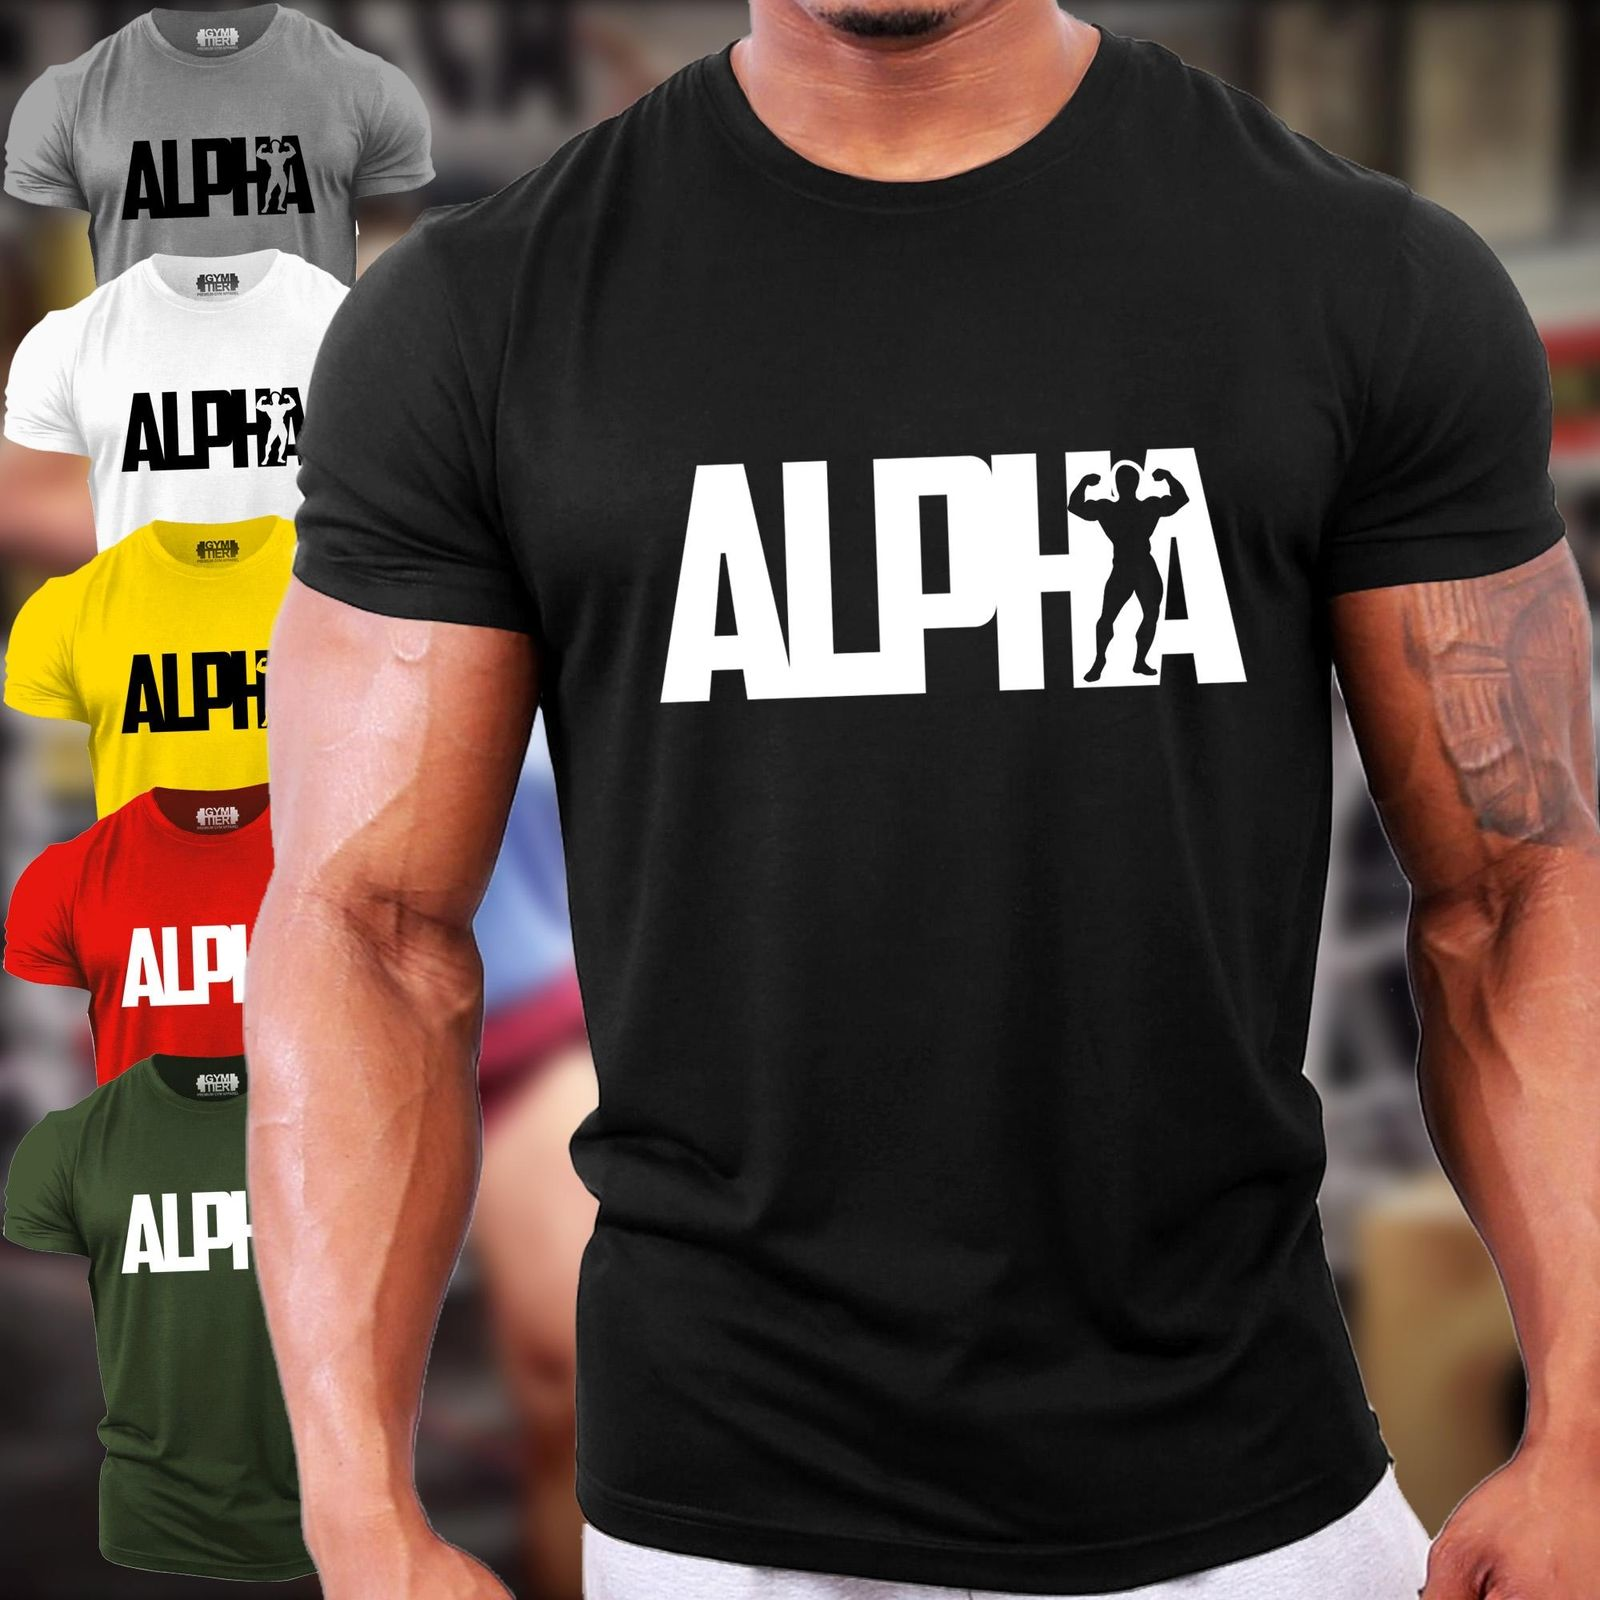 Motivational Shirts with Sayings Alpha tshirt Bodybuilding Weight lifting Graphic tee Gym Fitness Mens workout shirt Mens t shirt